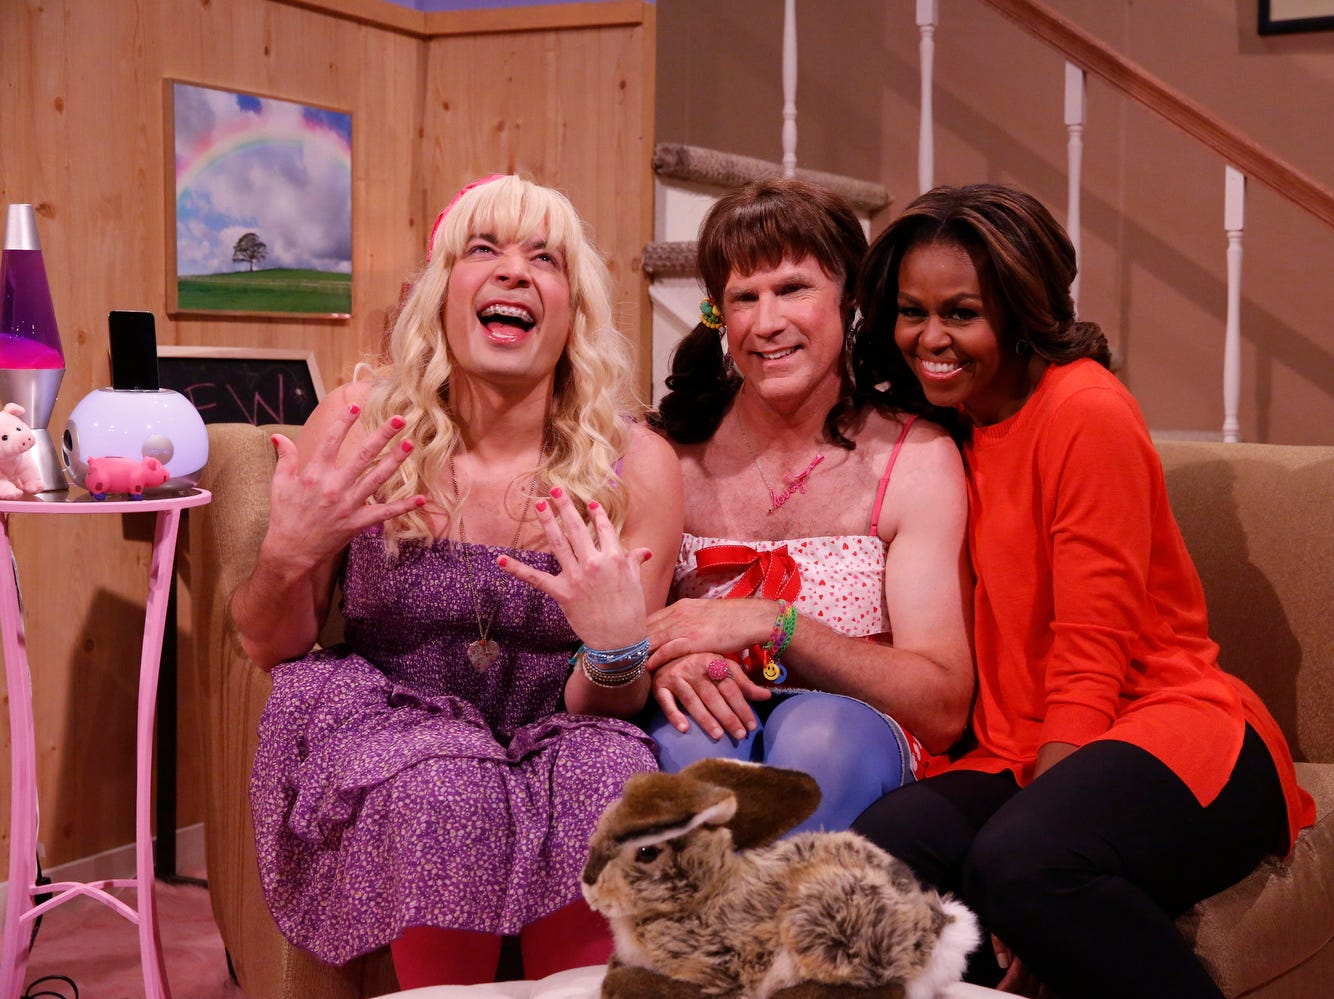 """ANY AP HANDOUT PHOTO OVER 30 DAYS OLD MUST BE CHECKED AGAINST AP ARCHIVE FOR USAGE RIGHTS. DO NOT PUBLISH WITHOUT PHOTO EDITOR CONFIRMATION. From left: Host Jimmy Fallon, actor Will Ferrell, First Lady Michelle Obama during the """"Ew"""" skit on Thursday Feb. 20, 2014 during comedian Fallon's inaugural week as the new """"Tonight Show"""" host. (AP Photo/NBC, Lloyd Bishop) ORG XMIT: NY110"""